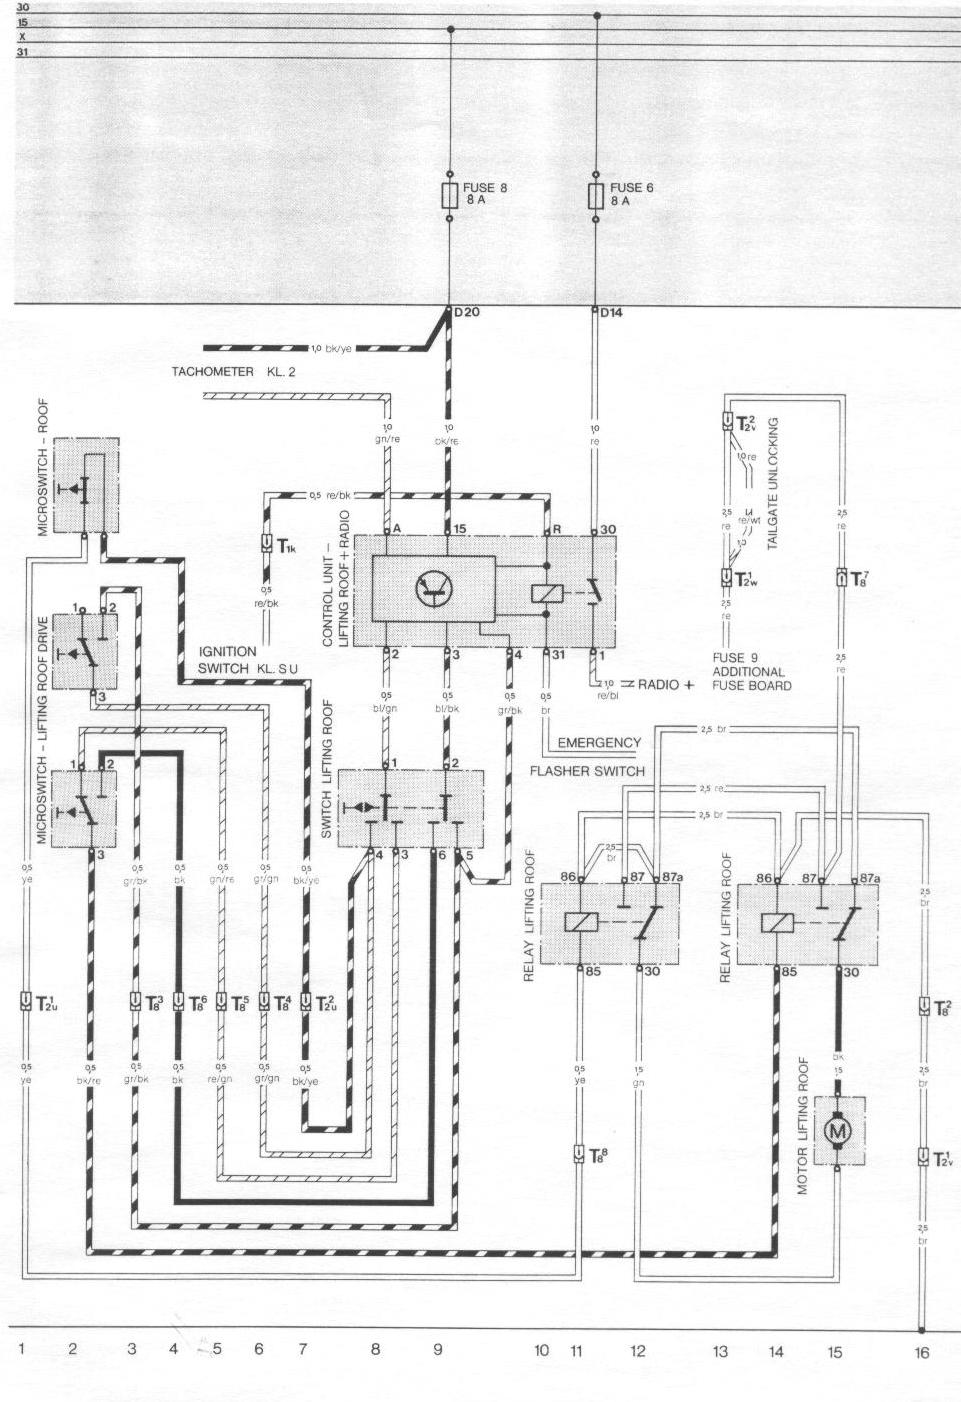 pelican parts porsche 924 944 electrical diagrams porsche 924 relay diagram porsche 924 fuse box layout